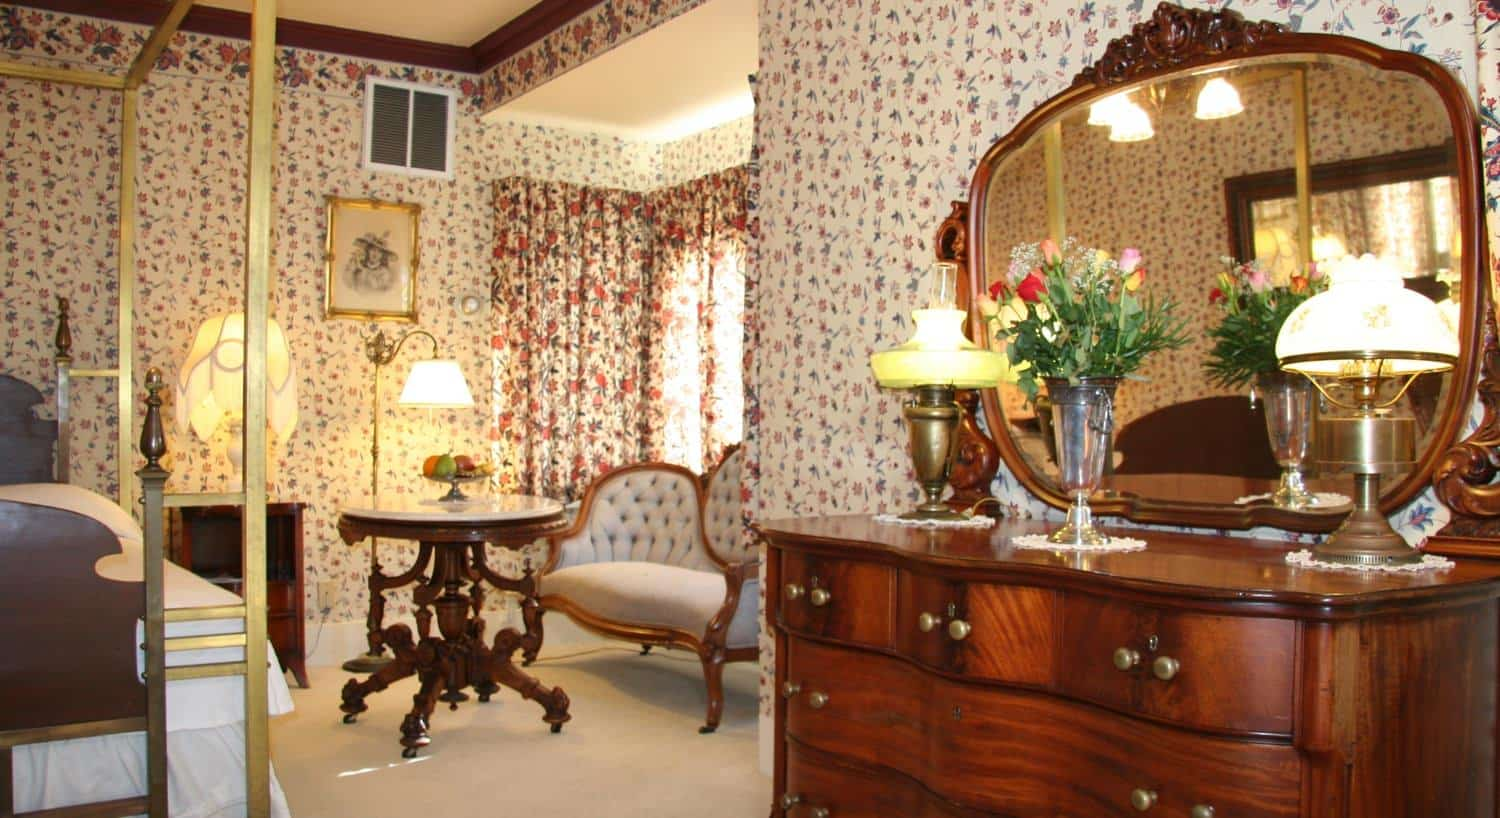 Brass guest room with floral walls, wood bed with gold canopy, dresser with mirror, fresh flowers and sitting area with windows